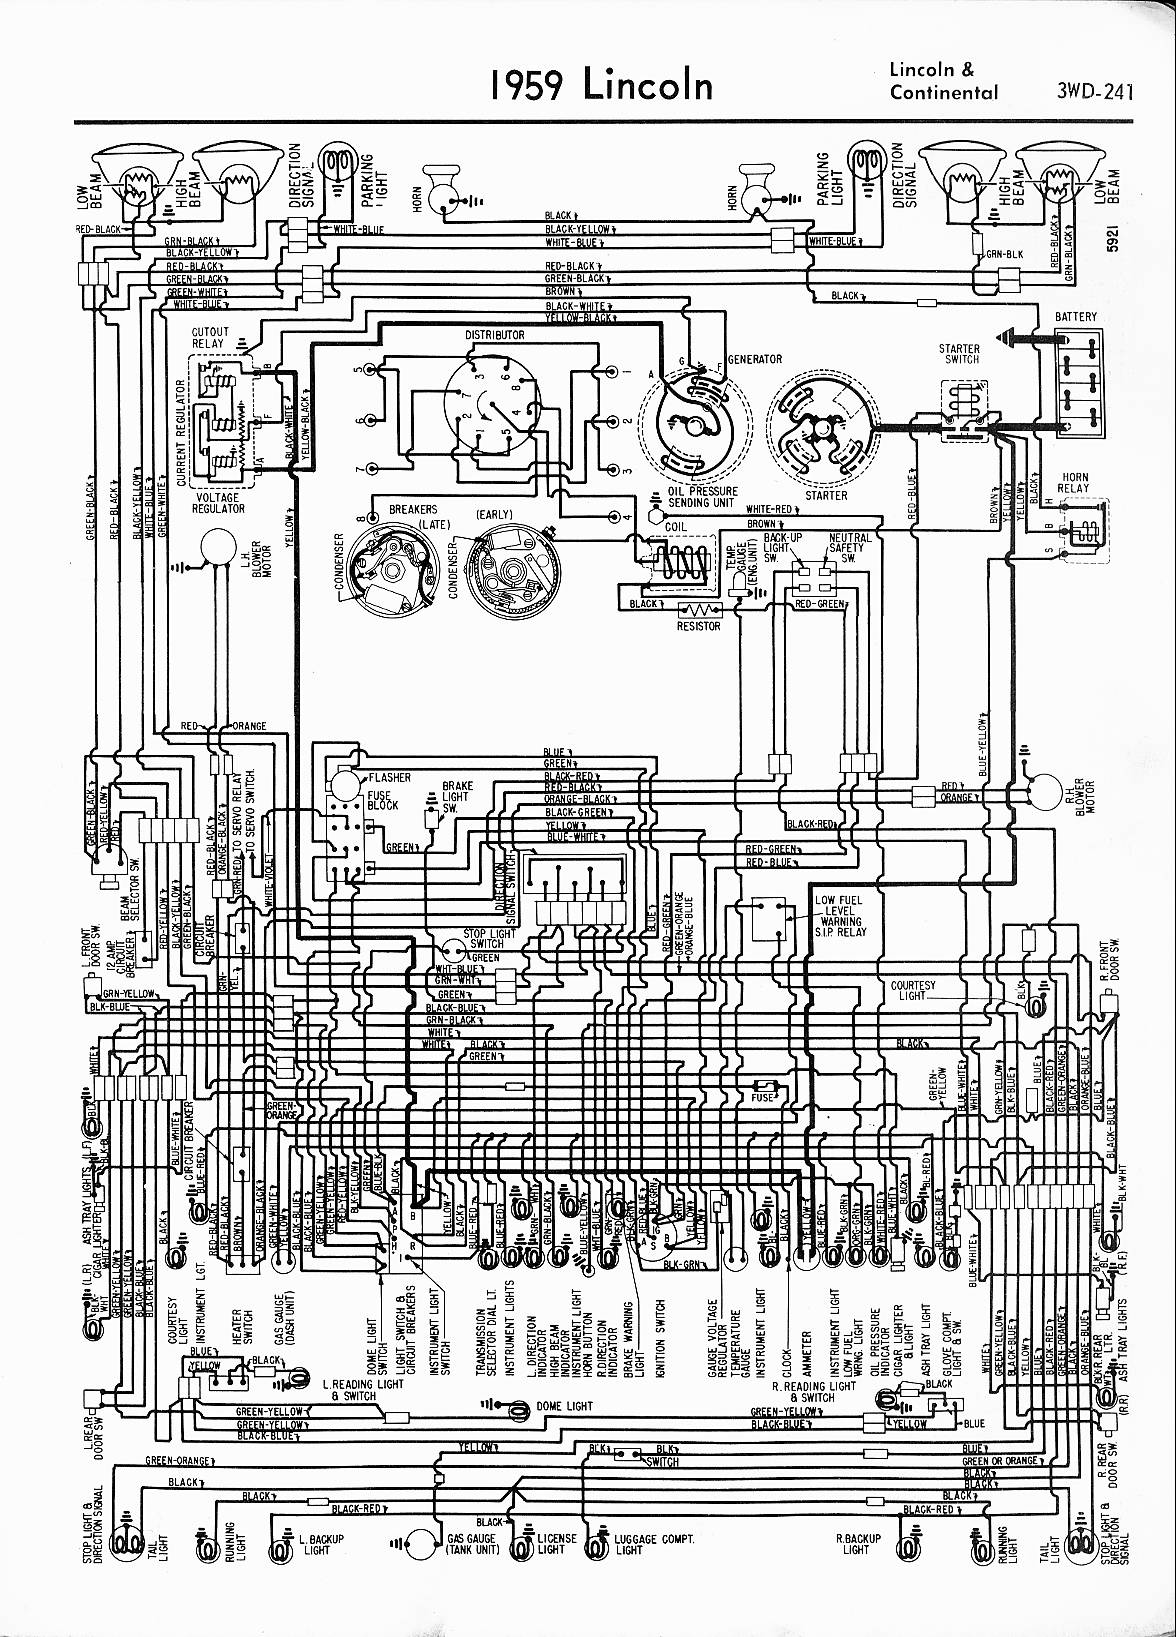 lincoln continental wiring diagram wire center u2022 rh linxglobal co Wiring Schematics for Cars Air Conditioner Schematic Wiring Diagram